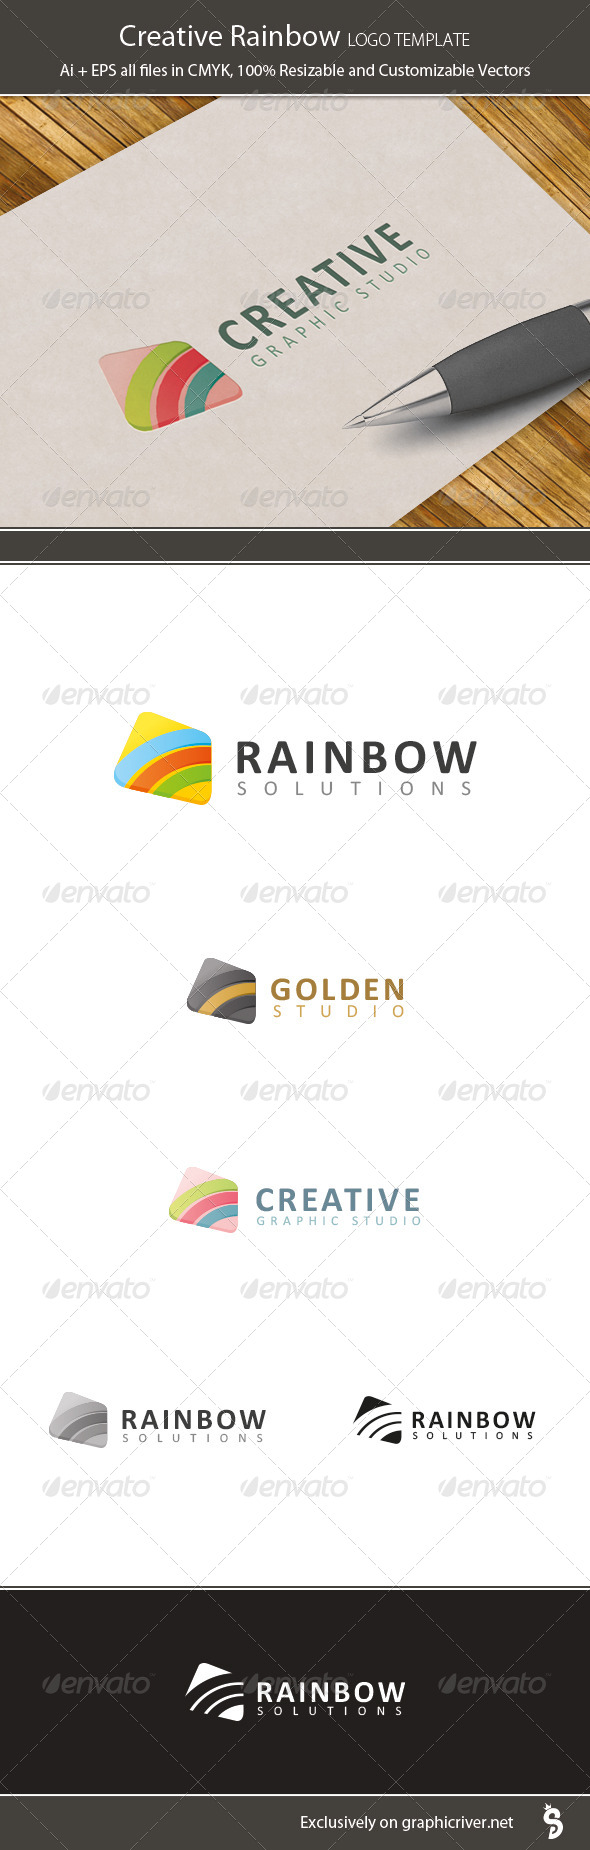 Creative Rainbow Logo Template